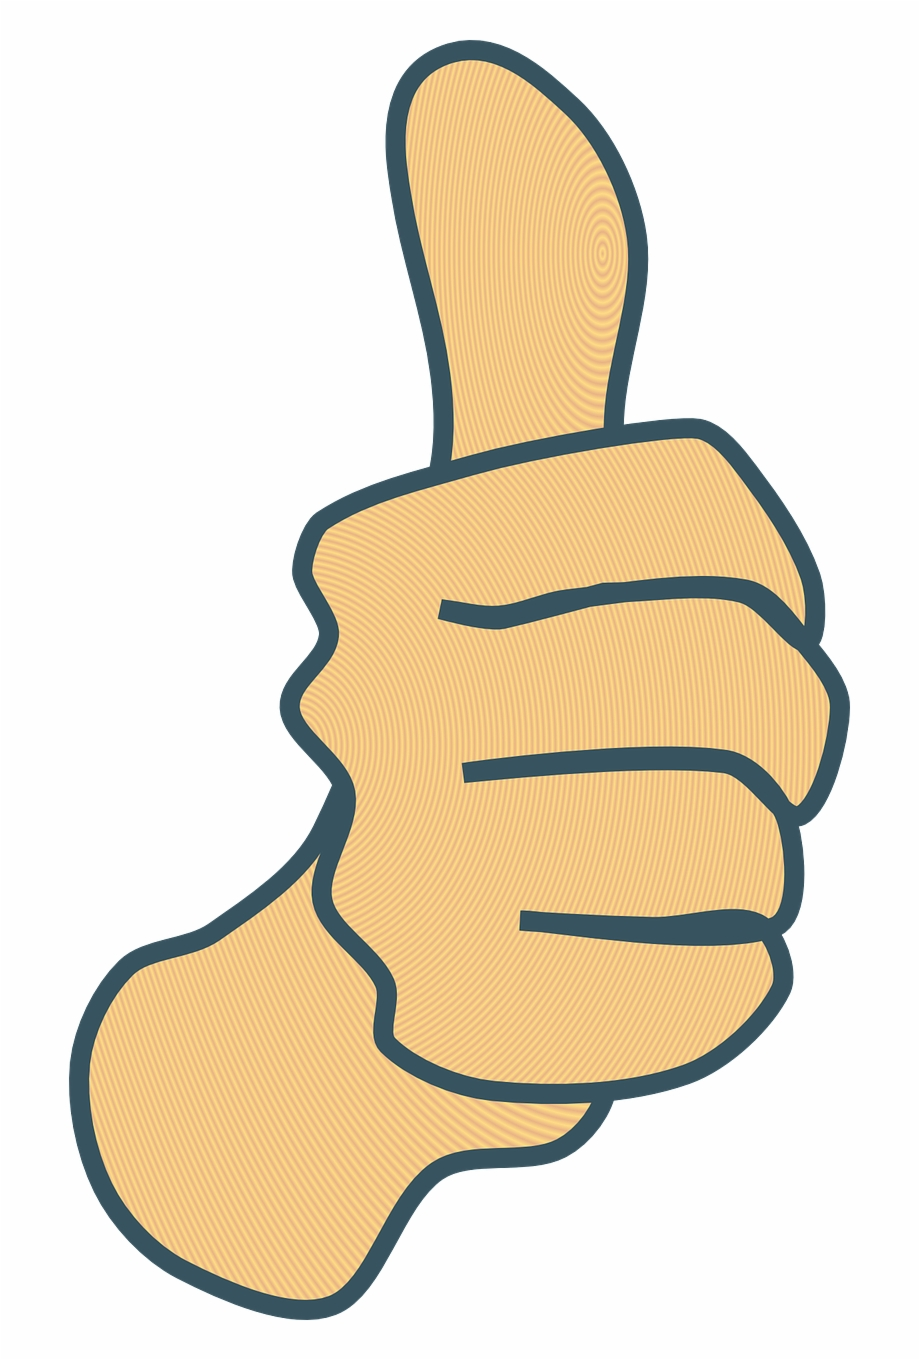 Hand Thumbs Up Like Confirm Png Image Thumbs Up Clipart Transparent Png Download 1745740 Vippng Human hand bones white thumbs up sign. hand thumbs up like confirm png image